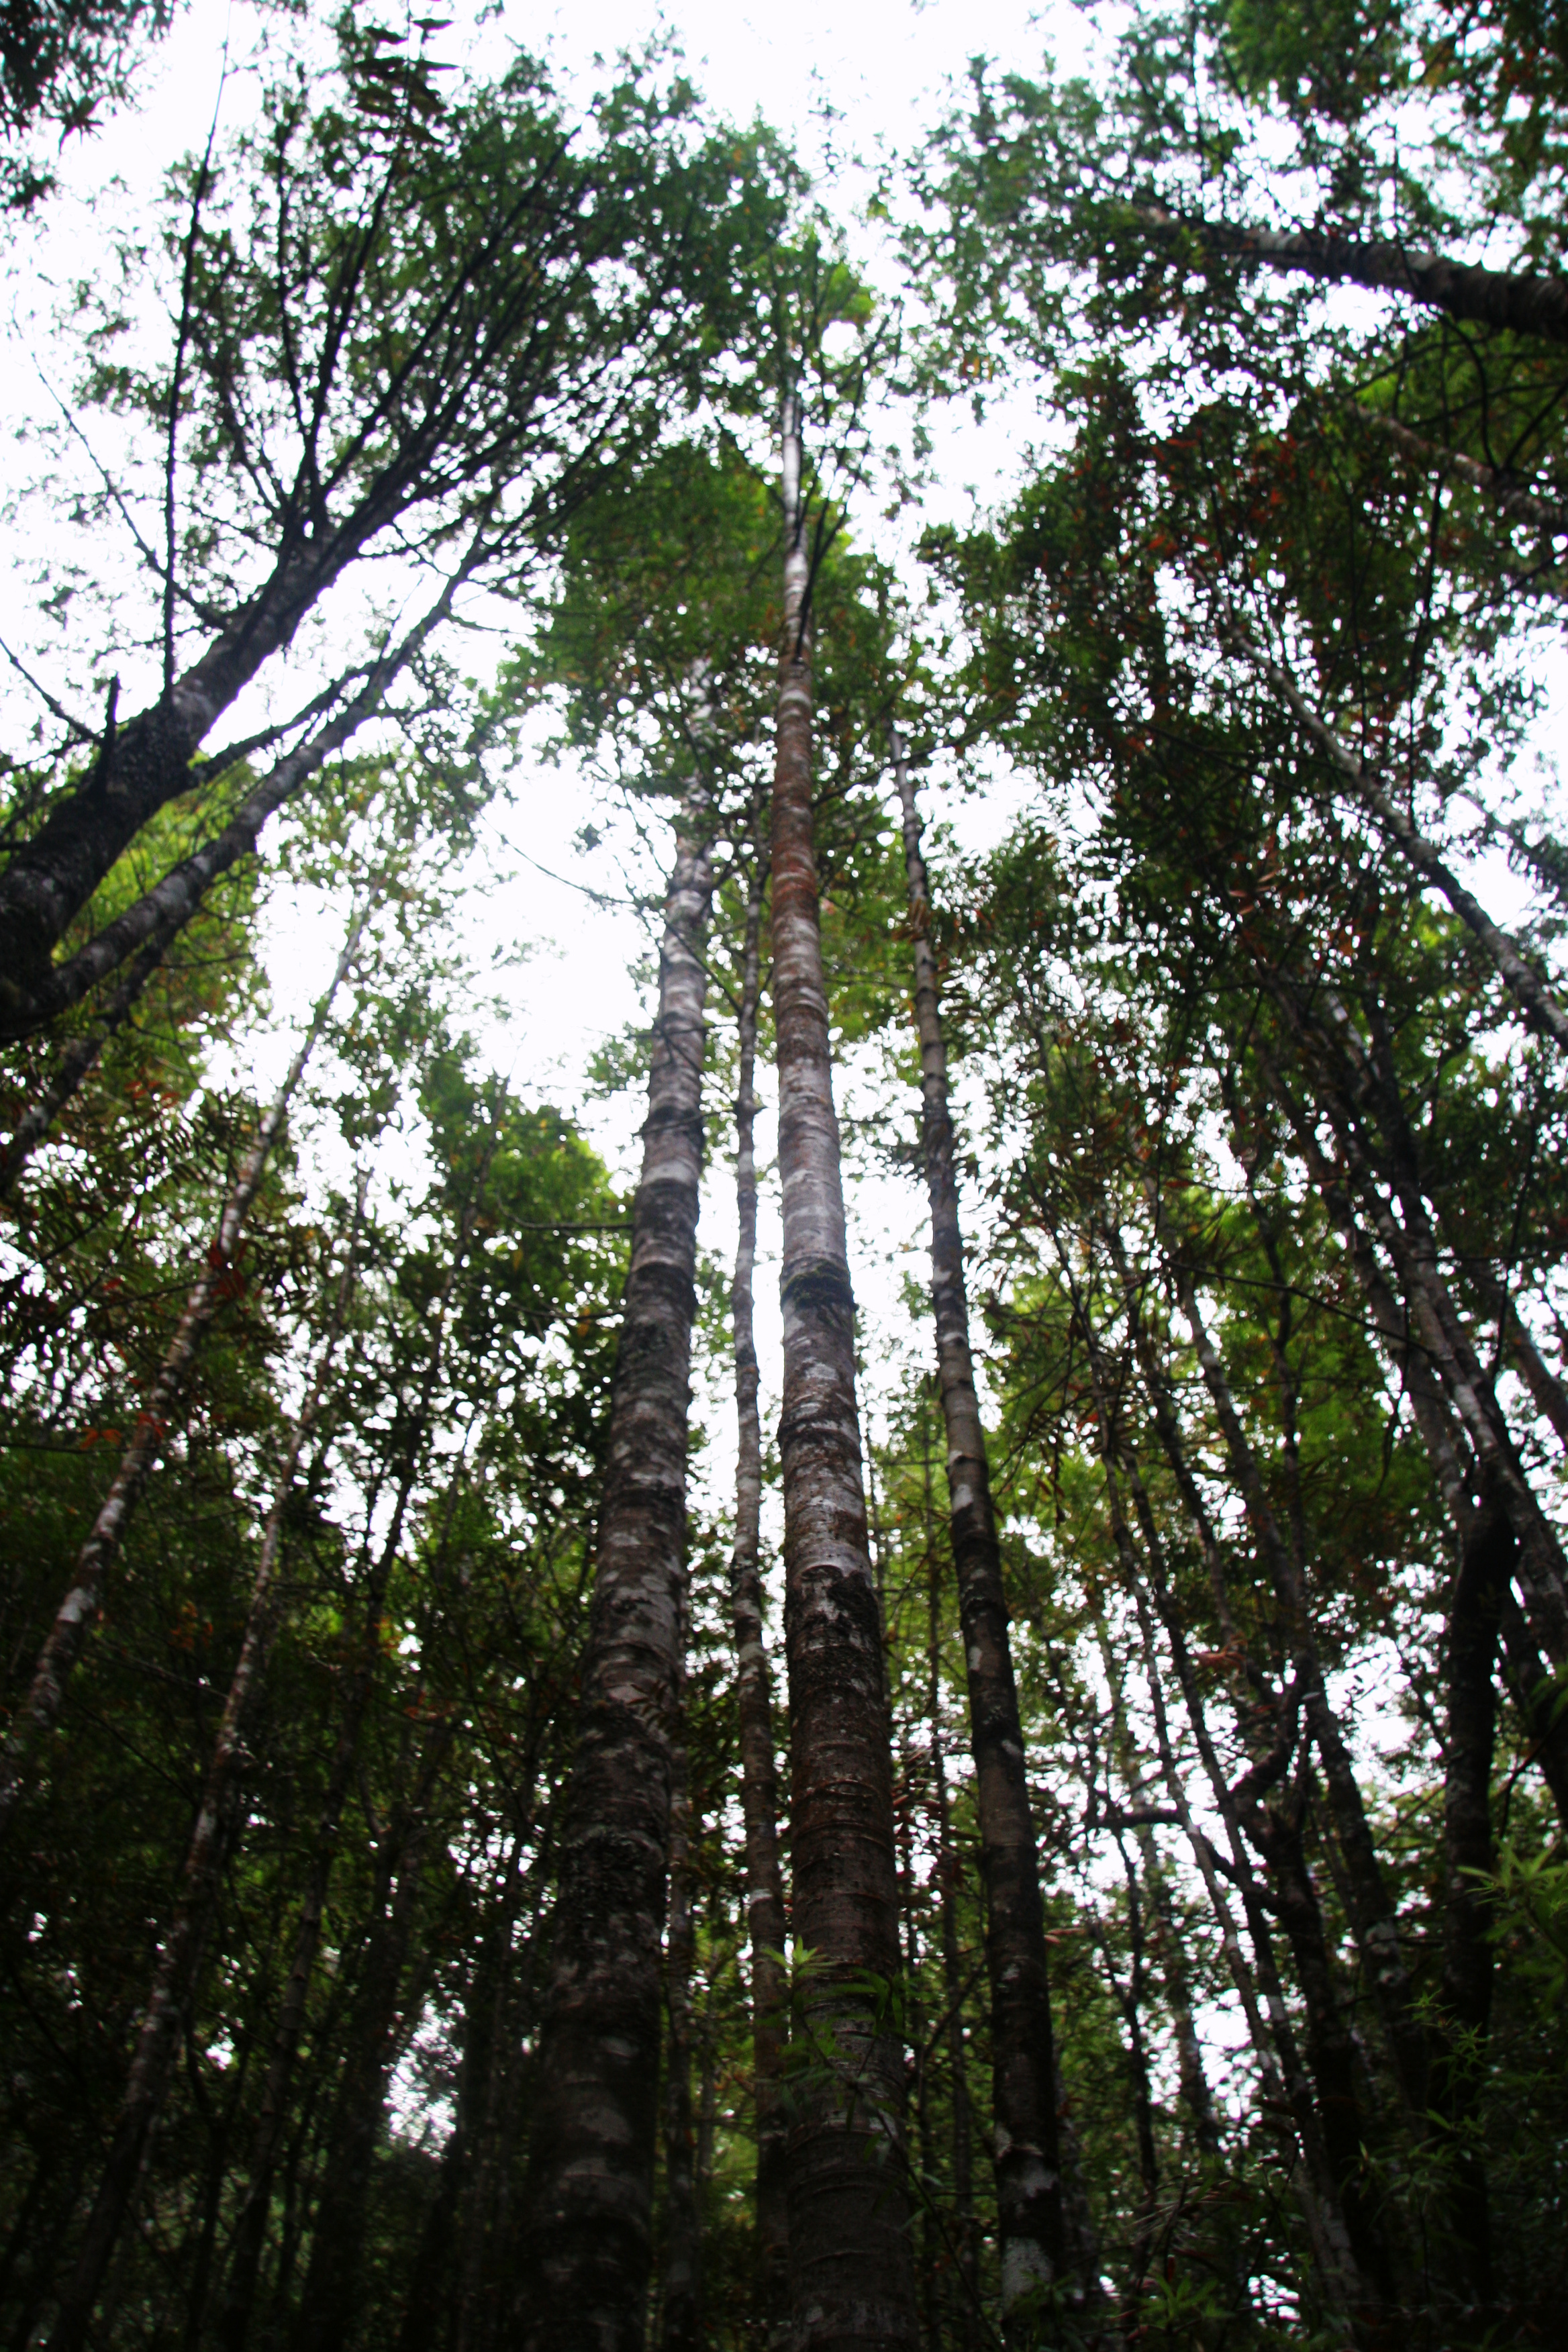 Rickers - young kauri trees towering looking upwards to the sky